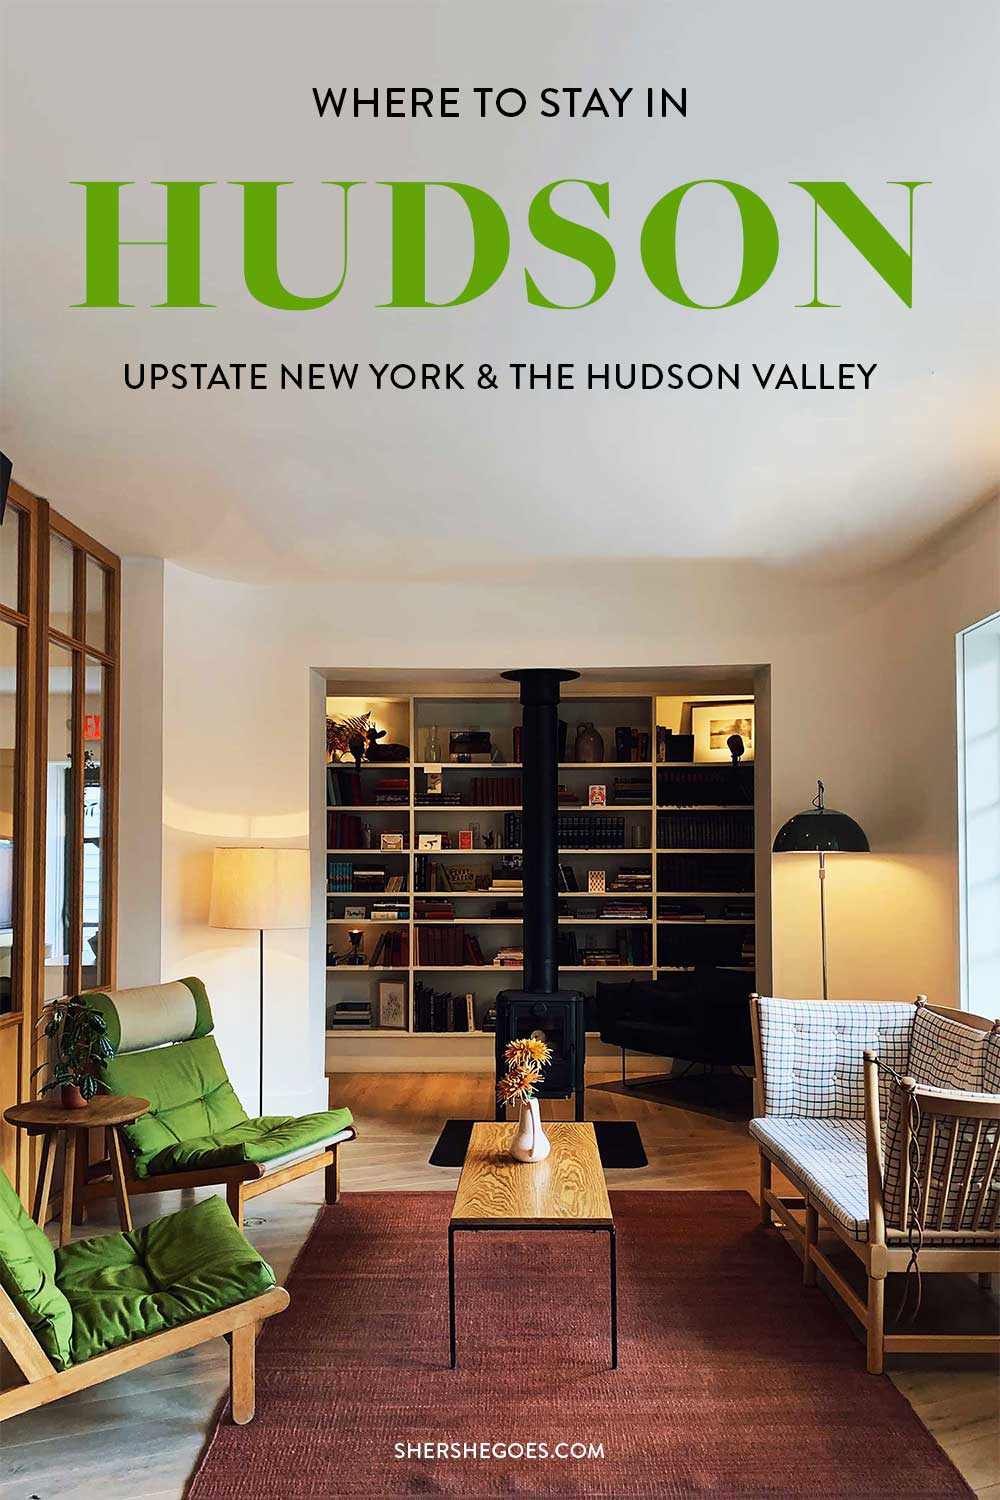 best-hotels-in-hudson-ny